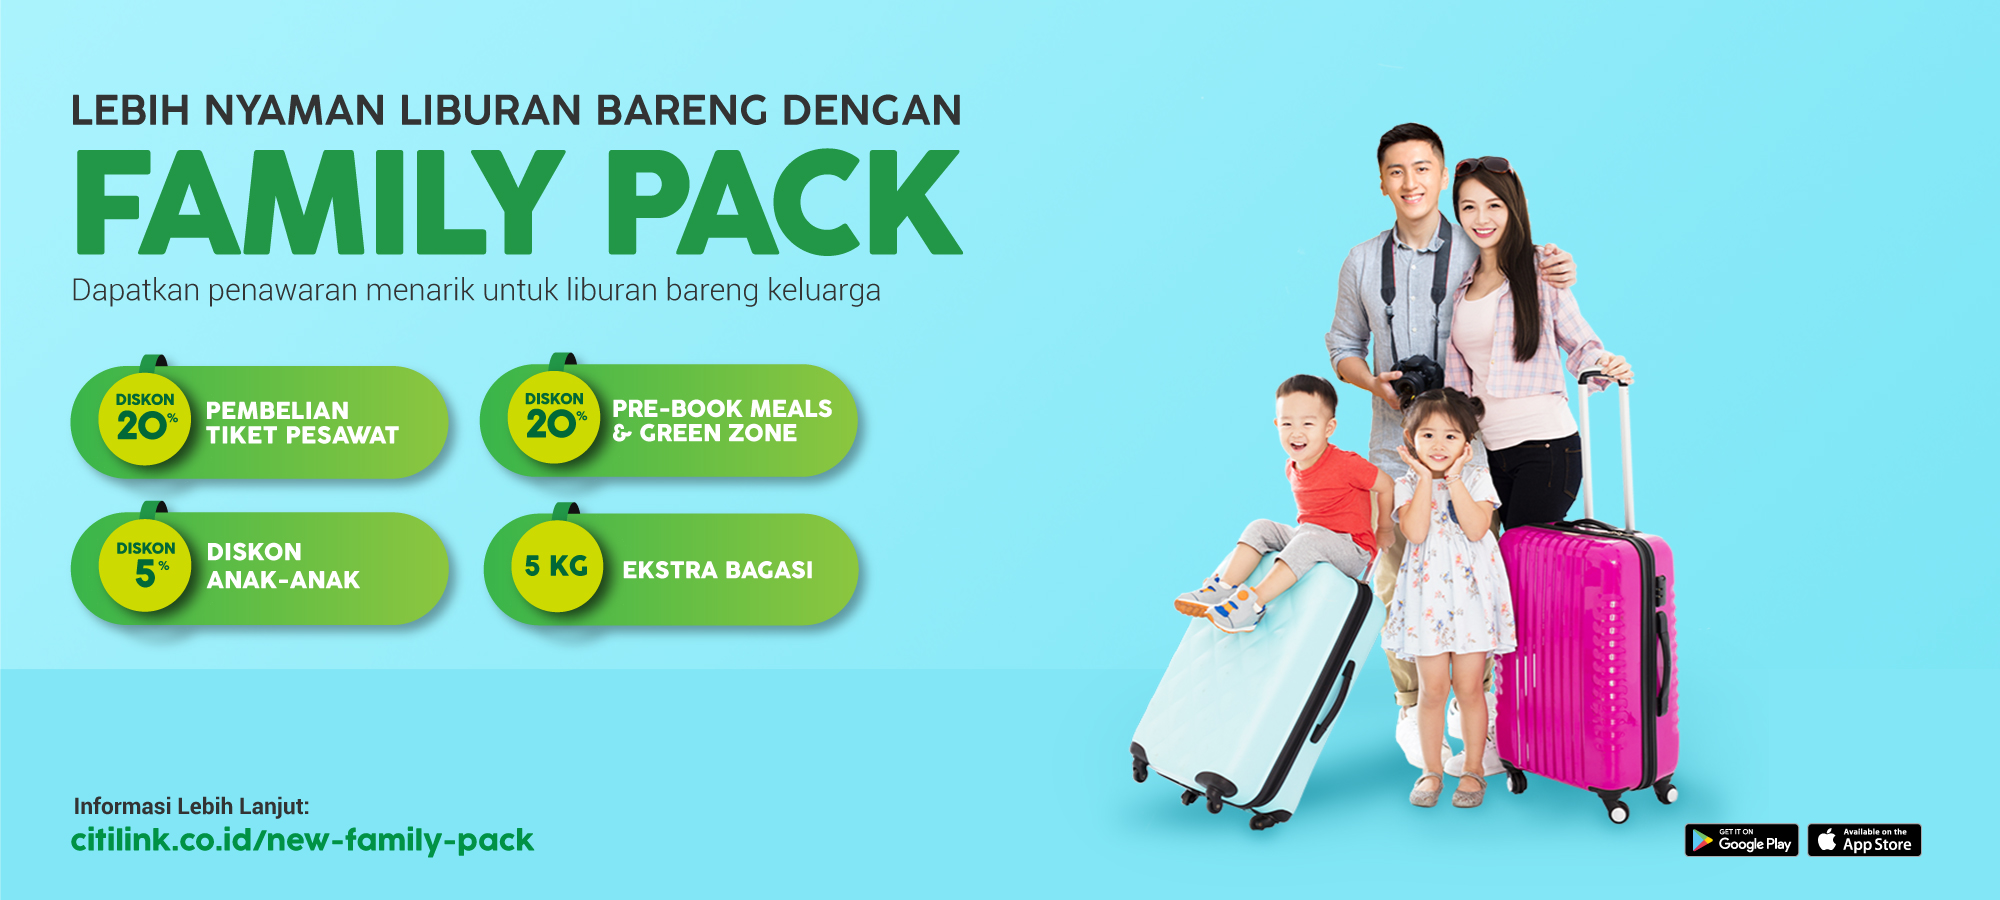 CTL---FAMILY-PACK-LANDING-PAGE